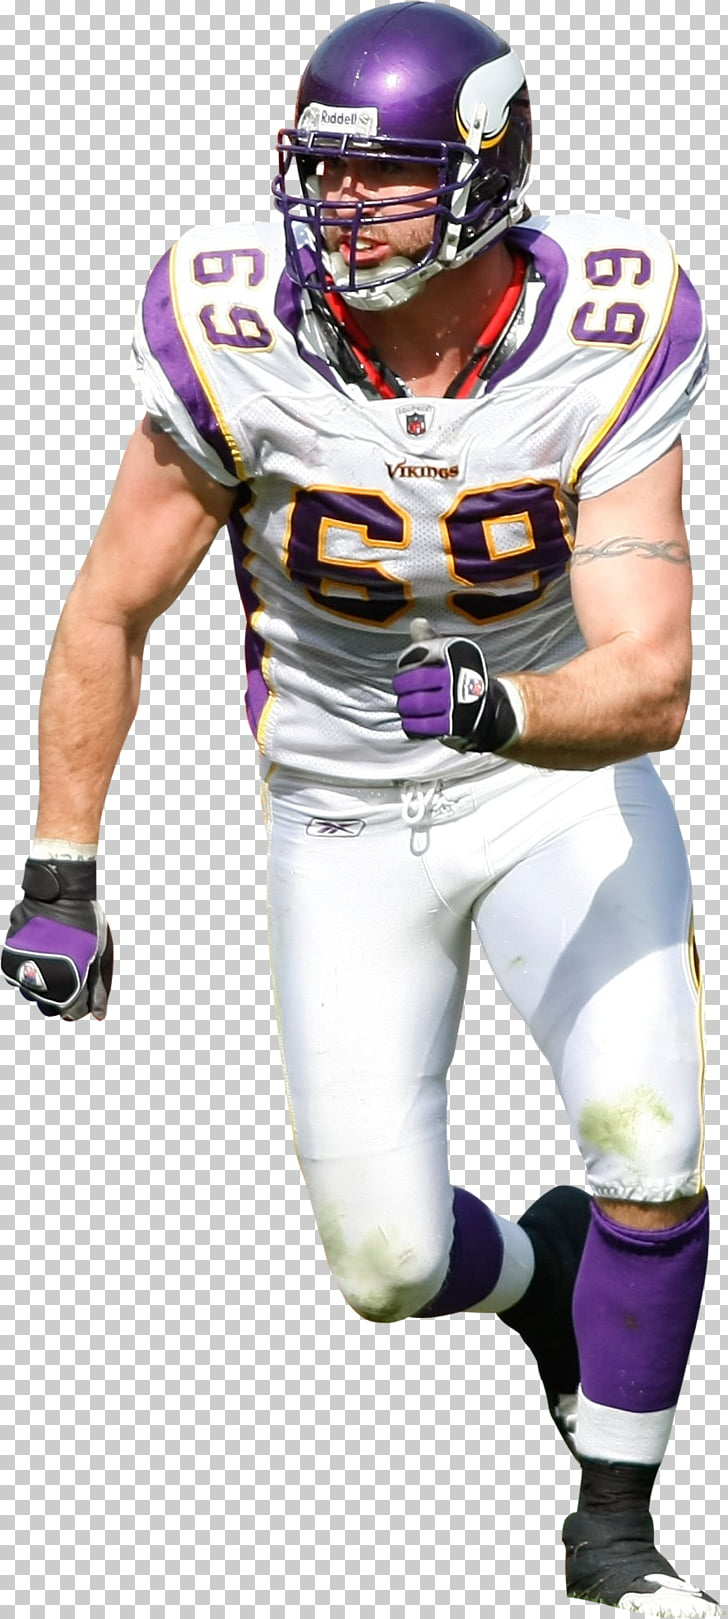 hight resolution of nfl united states american football player american football player man wearing white and purple